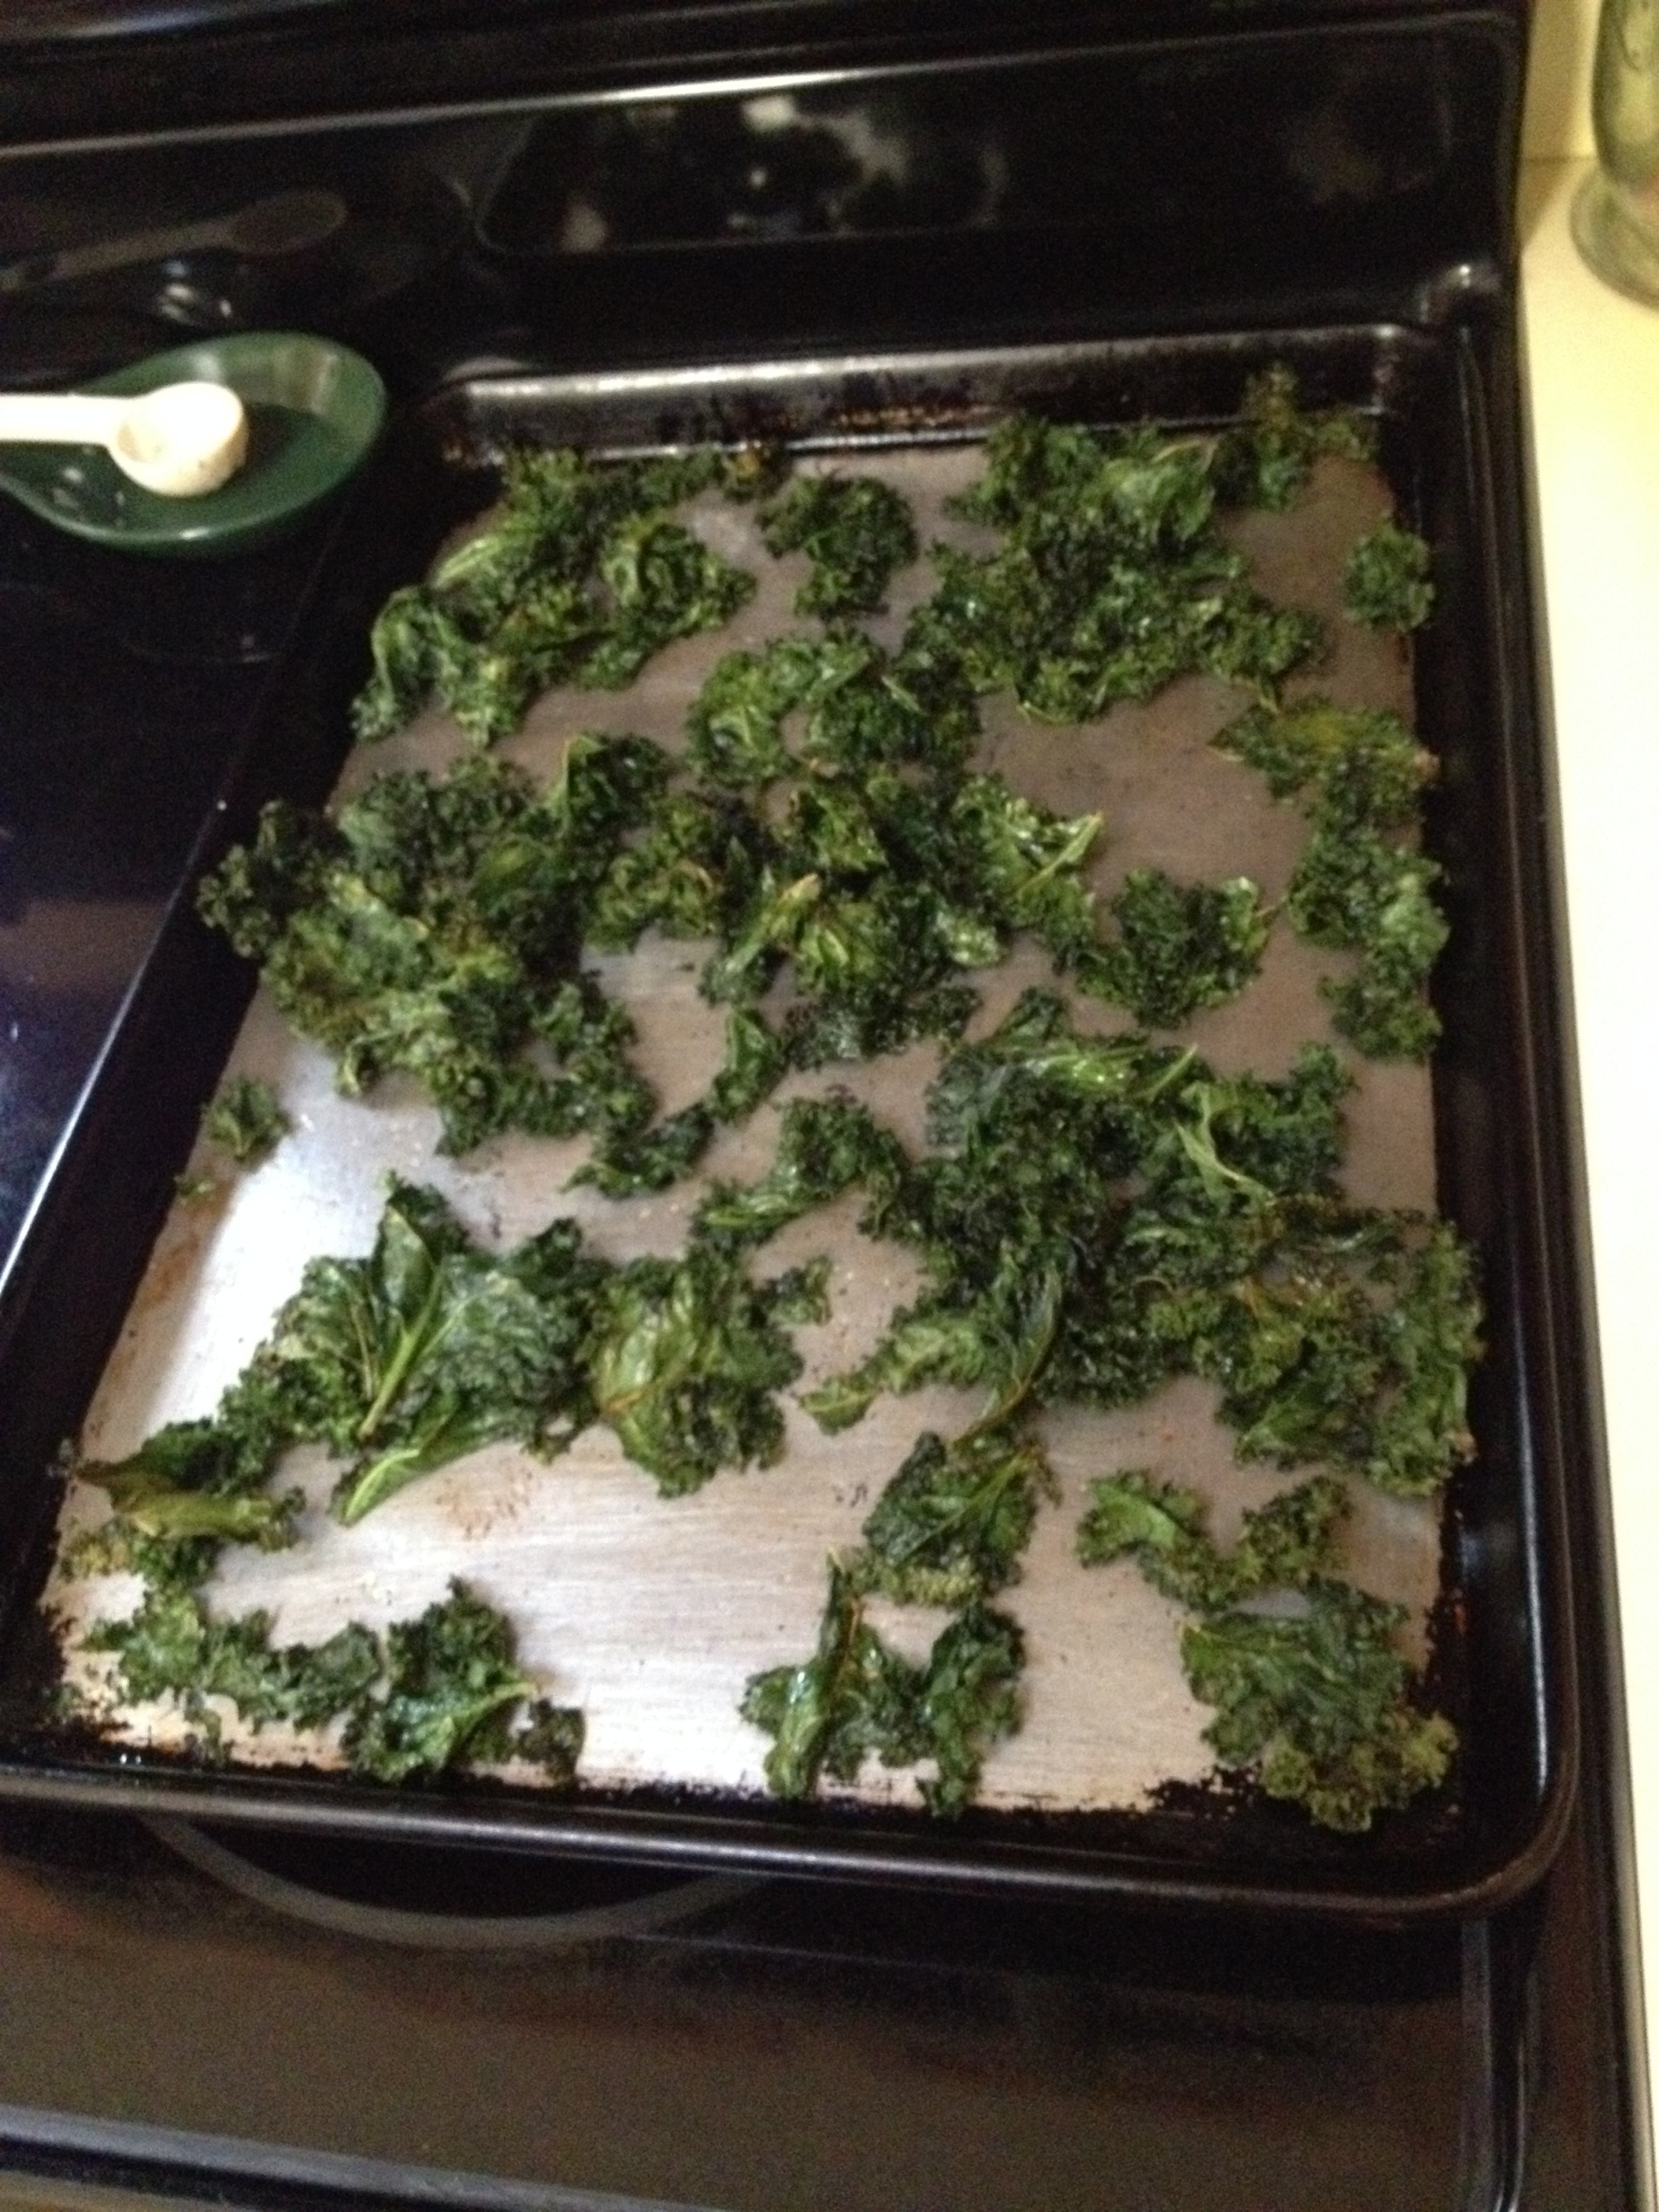 3) It's typical for kale leaves to shrink as they crisp up.